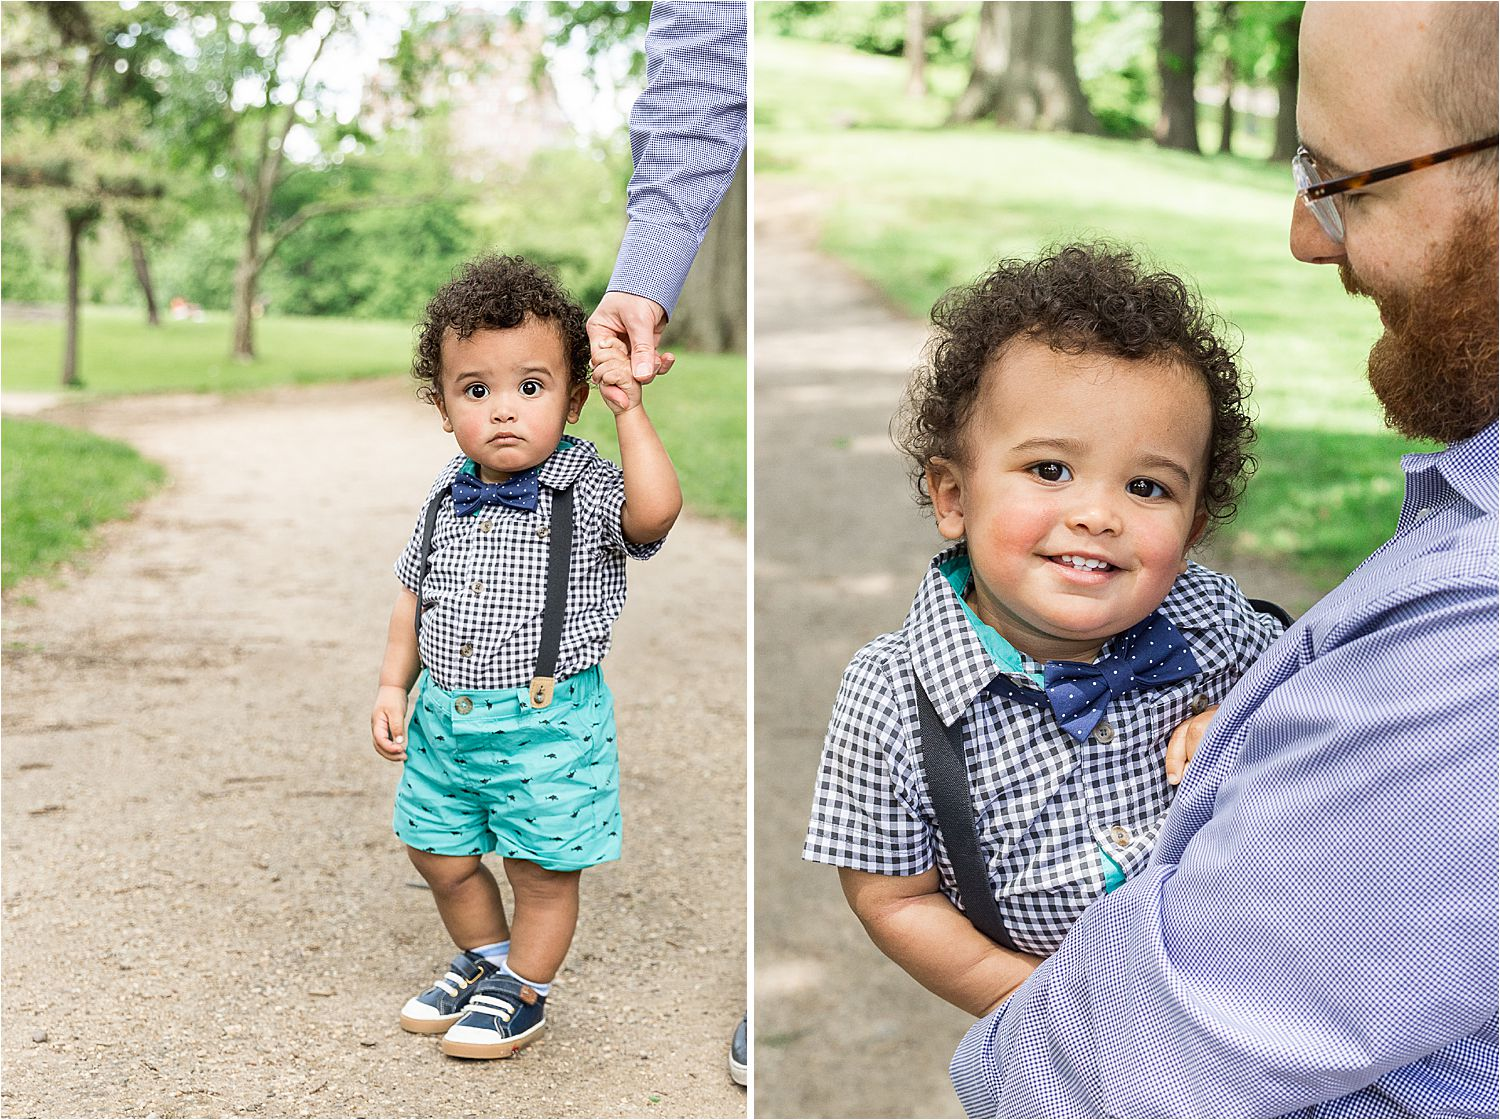 Central_Park_Family_Photographer_UWS_NYC_Nicole_Hawkins_Photography_First_Birthday_4.jpg